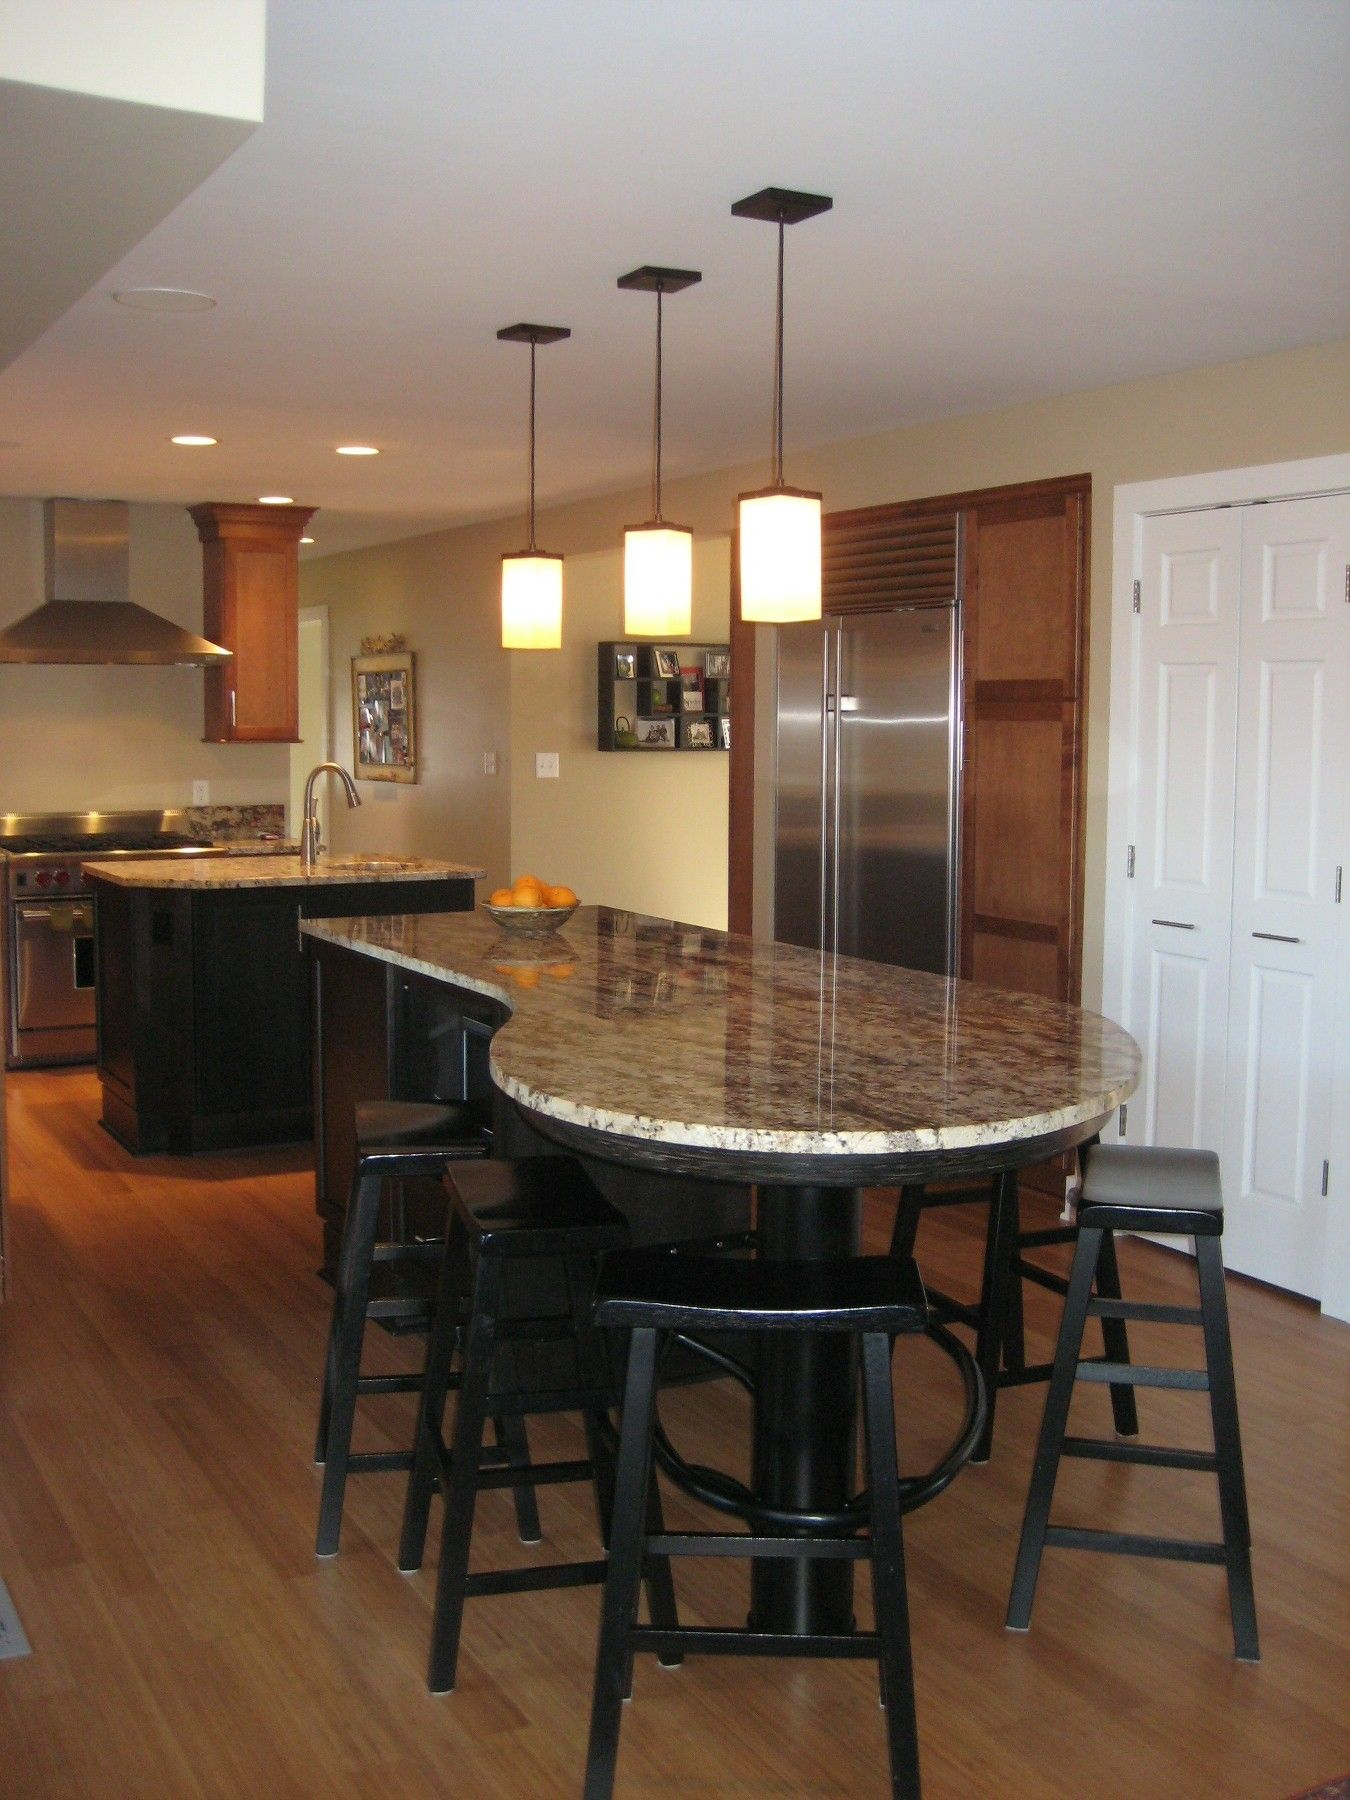 Kitchen Island Breakfast Bar Pendant Lighting. Horrible Pendant Lighting  Kitchen Together With Lights Over Island